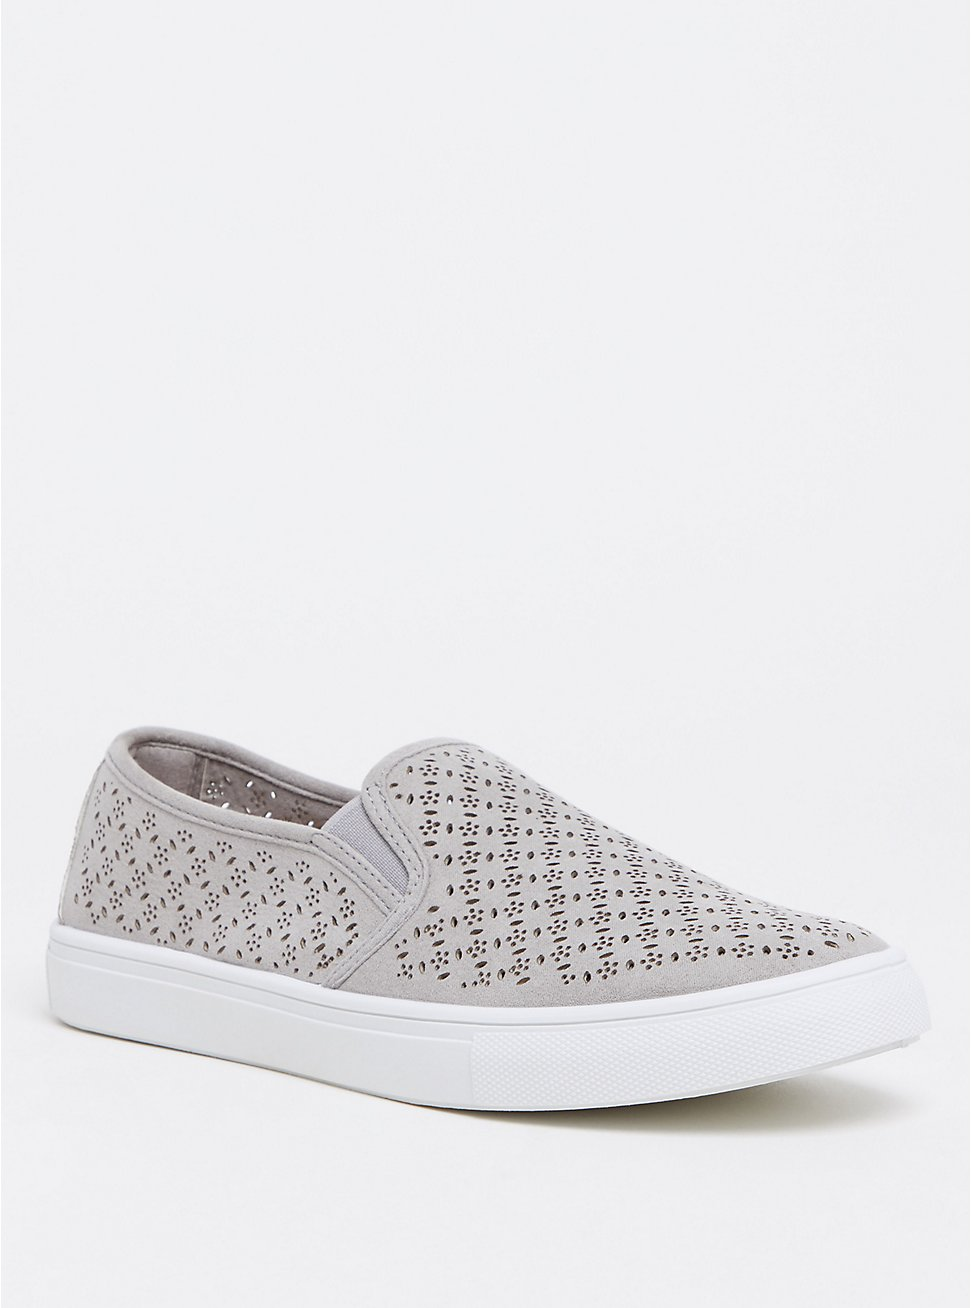 Grey Slip-On Faux Suede Laser Cut Sneaker (WW), GREY, hi-res